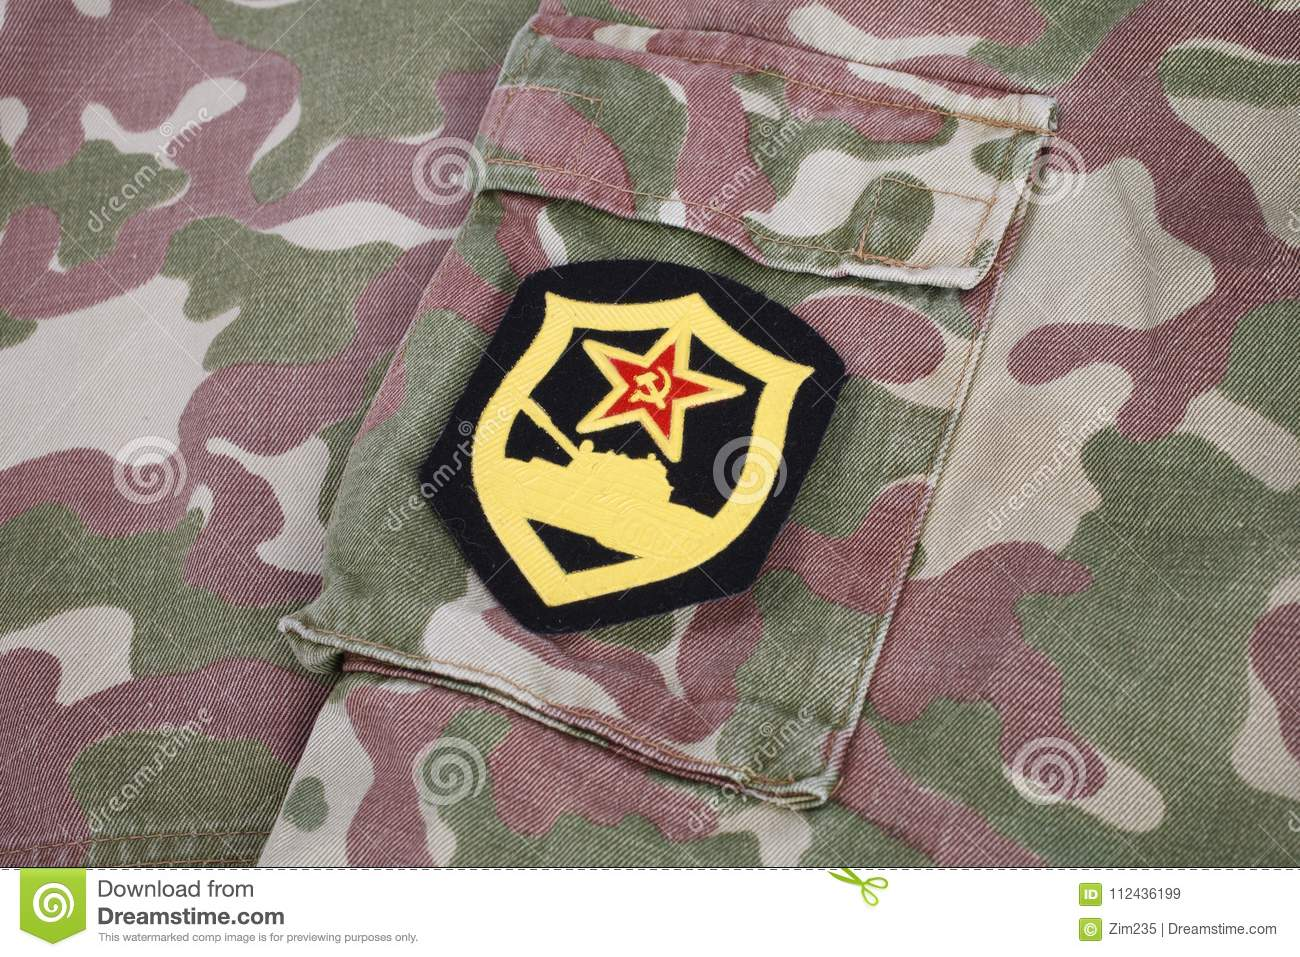 Soviet Army Tank Corps Shoulder Patch On Camouflage Uniform